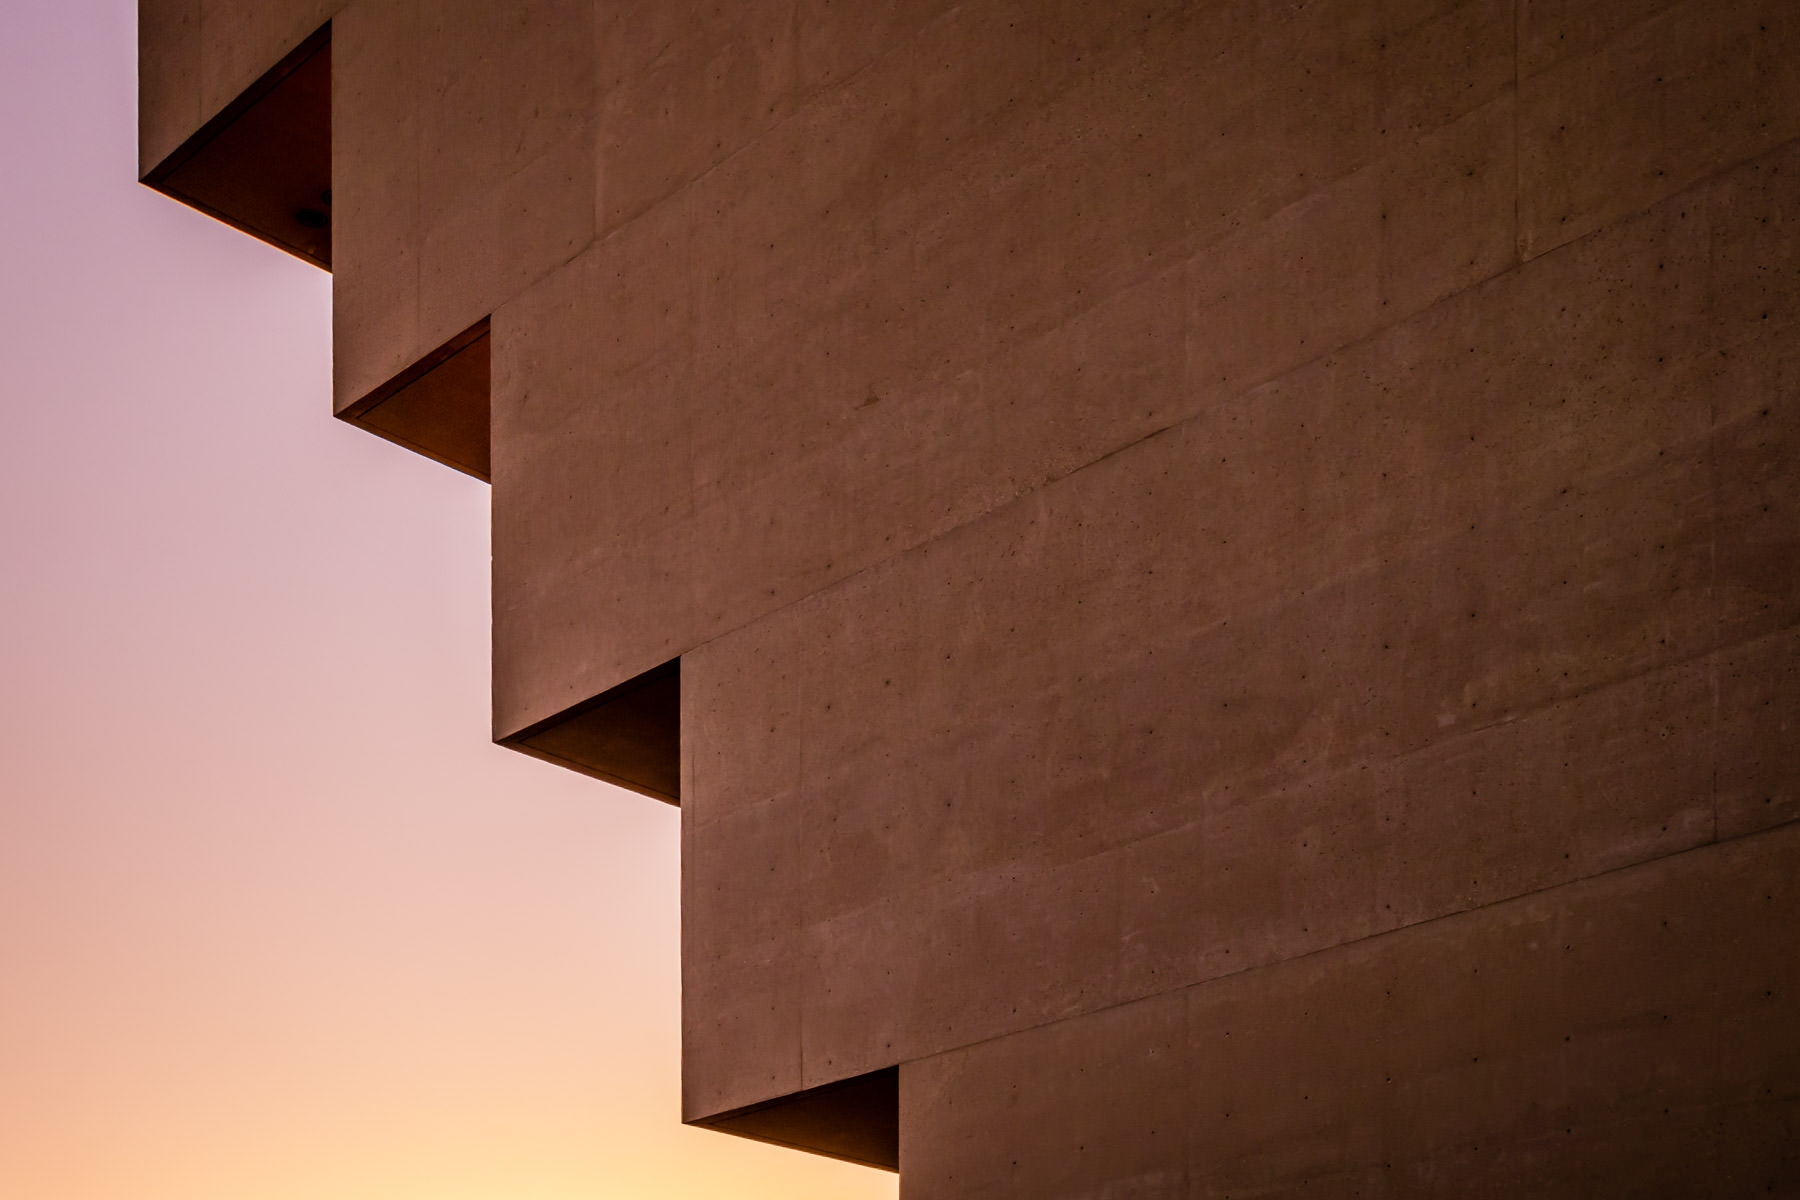 The late-evening sun illuminates this architectural detail of the I.M. Pei-designed Dallas City Hall.